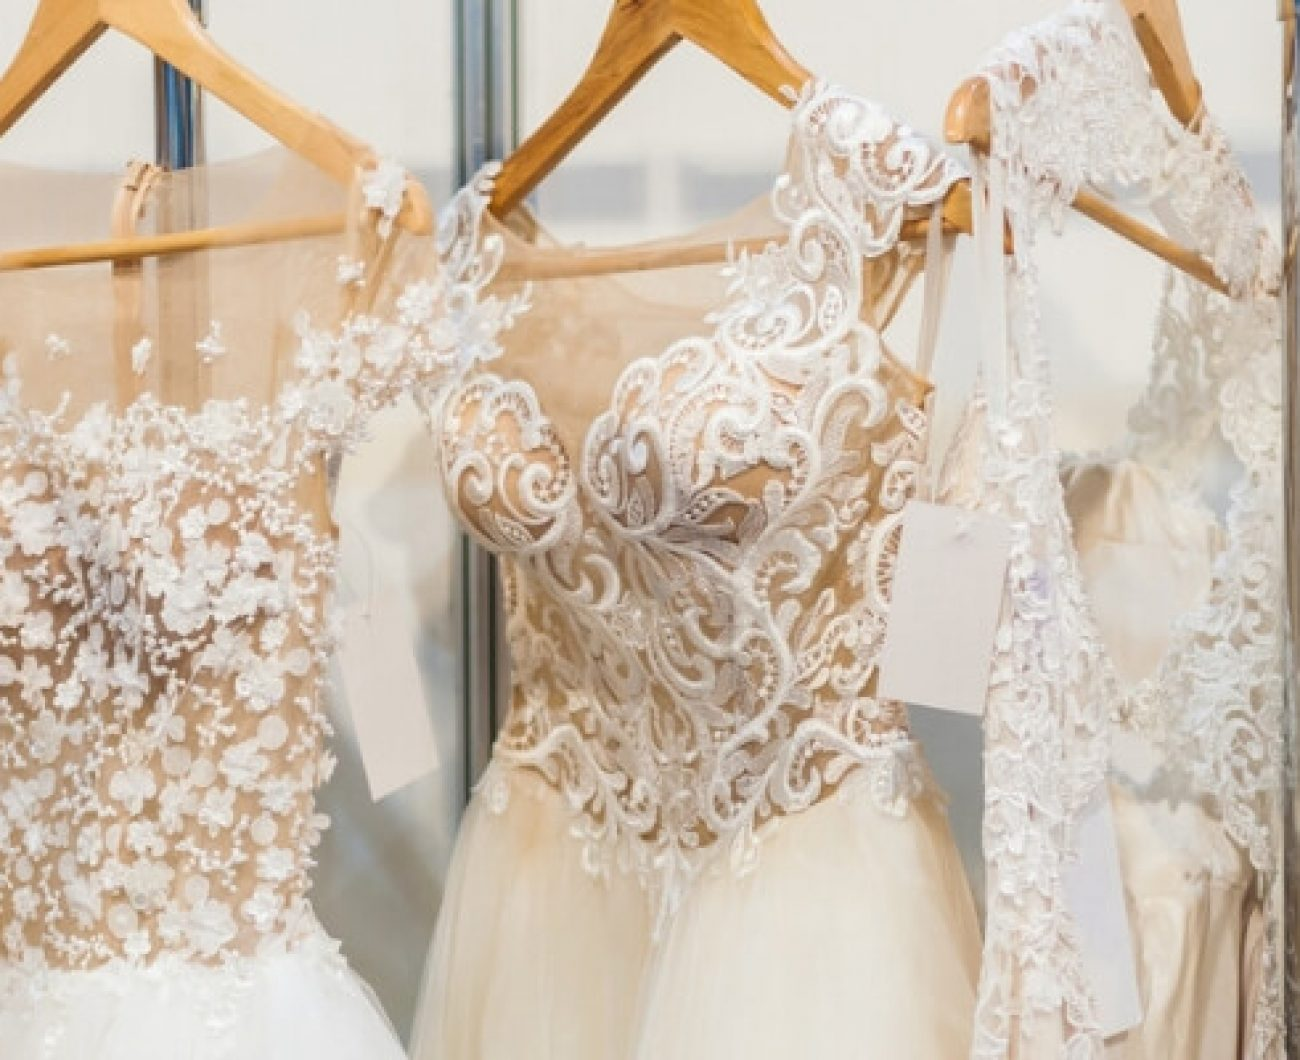 Wedding Dresses Hanging in a Shop